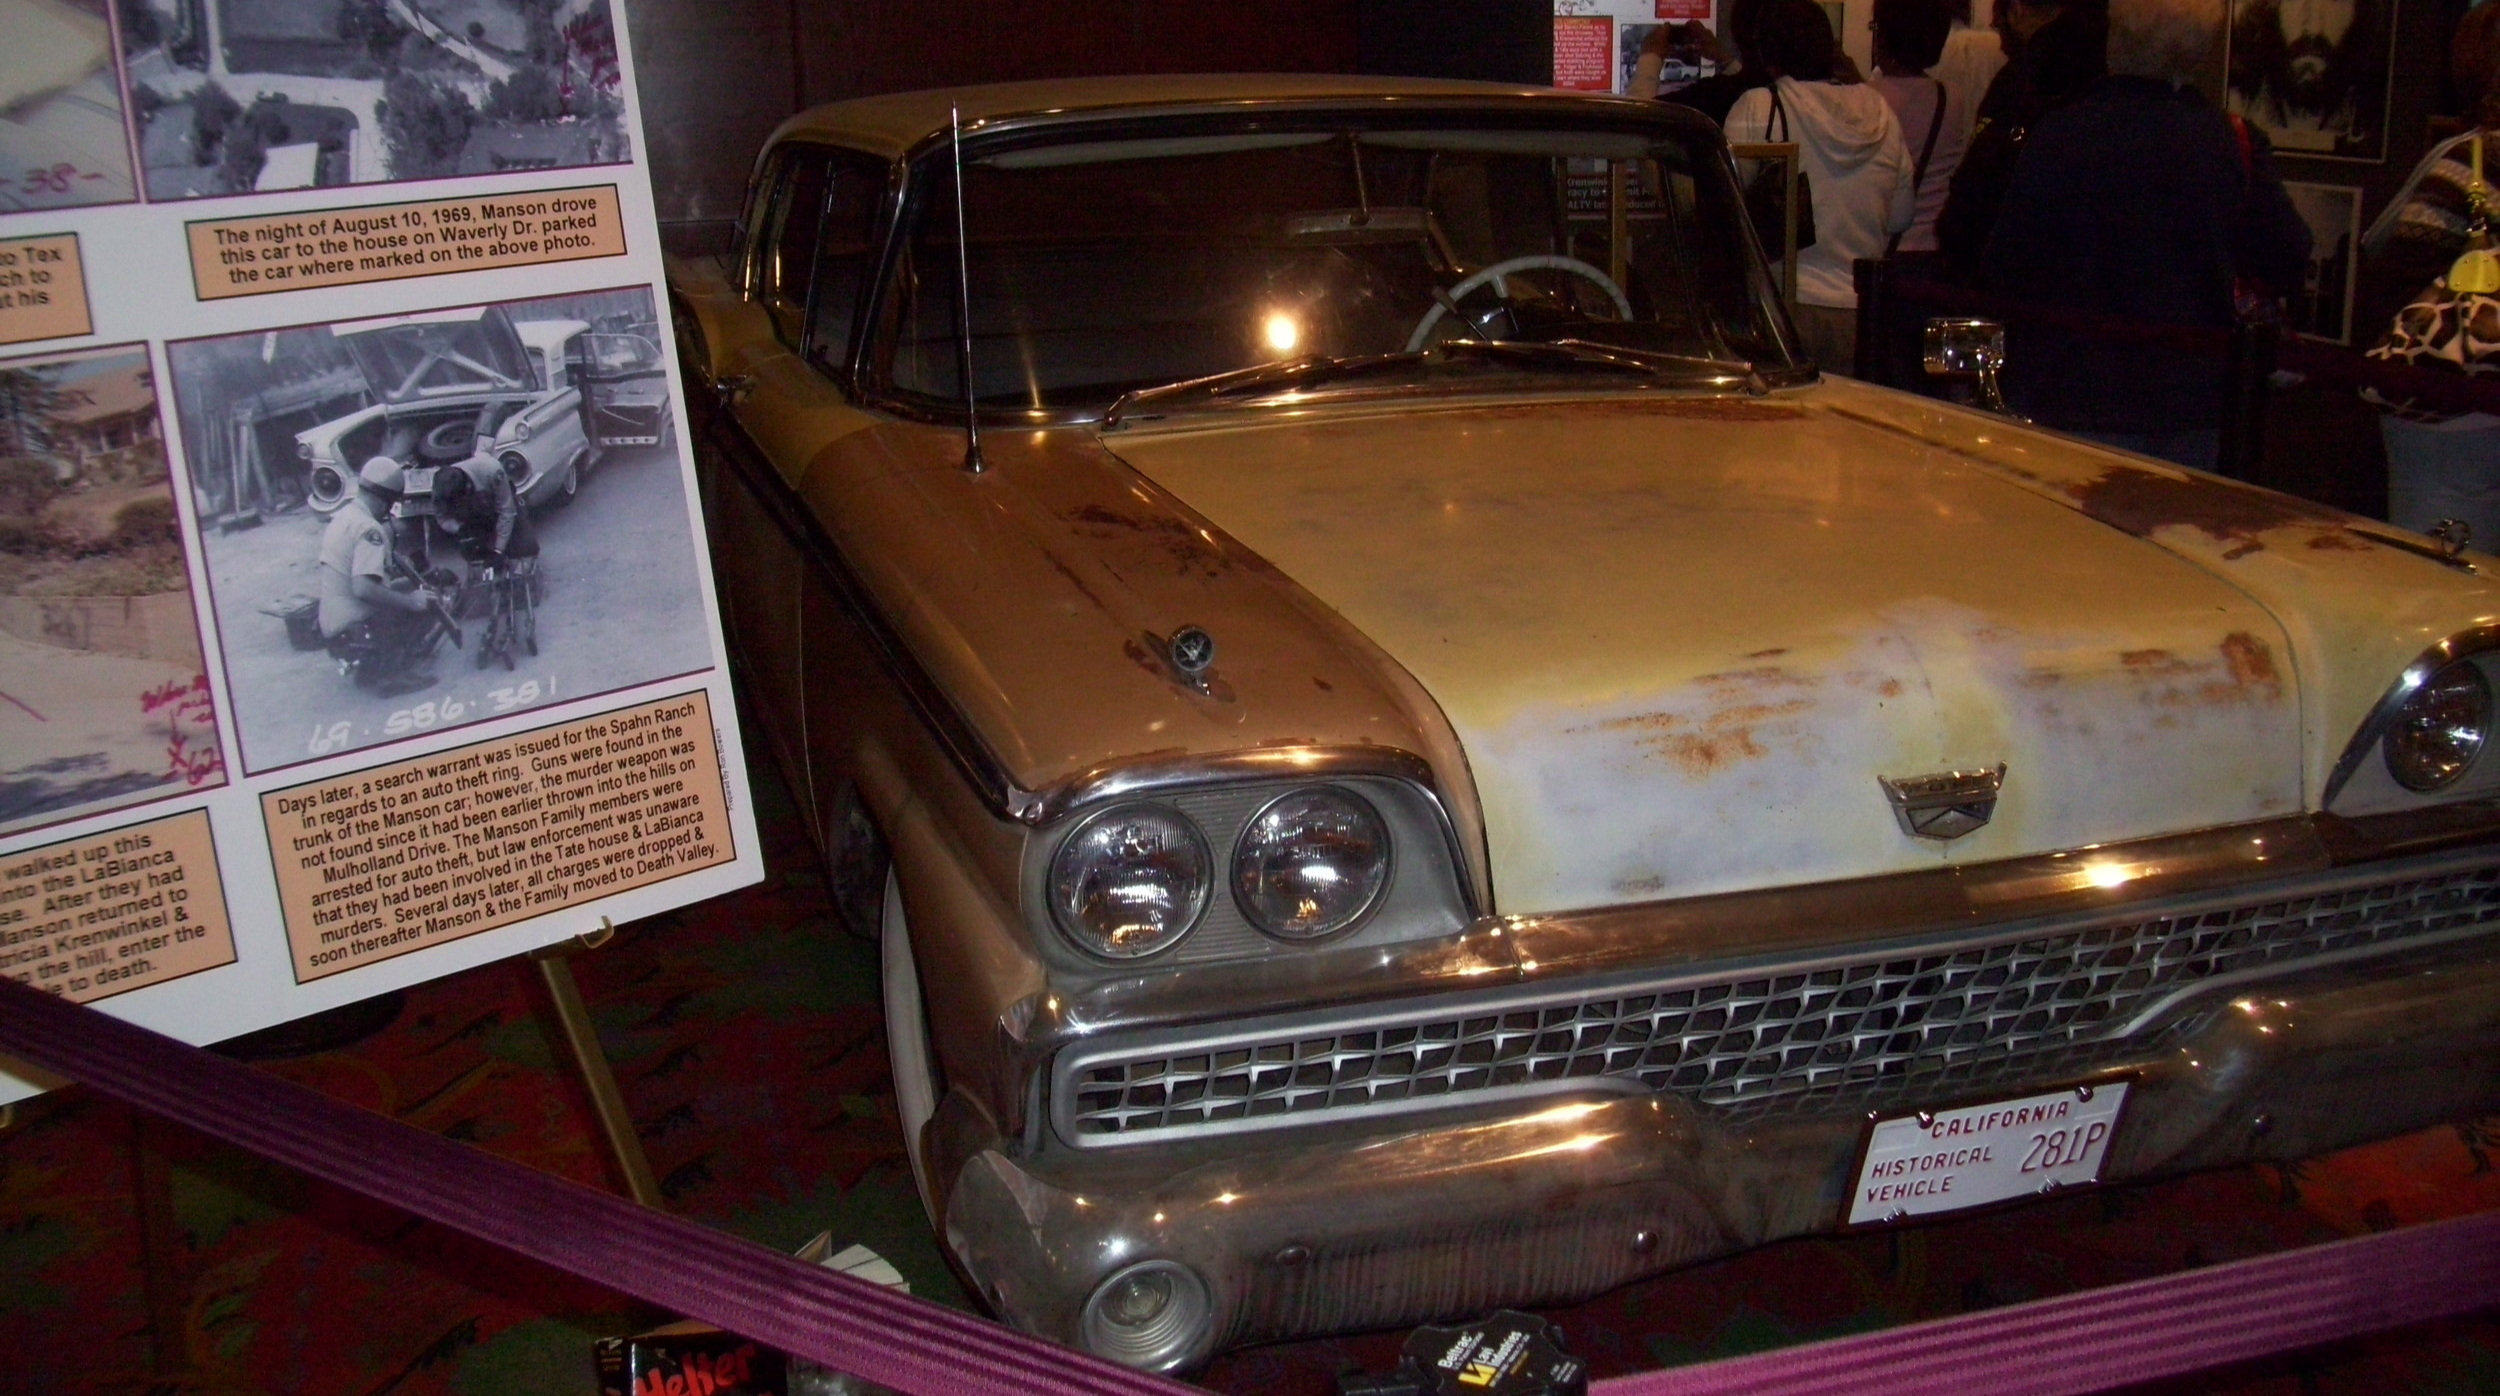 The car used by the Manson family the night of the murders now resides in a private museum